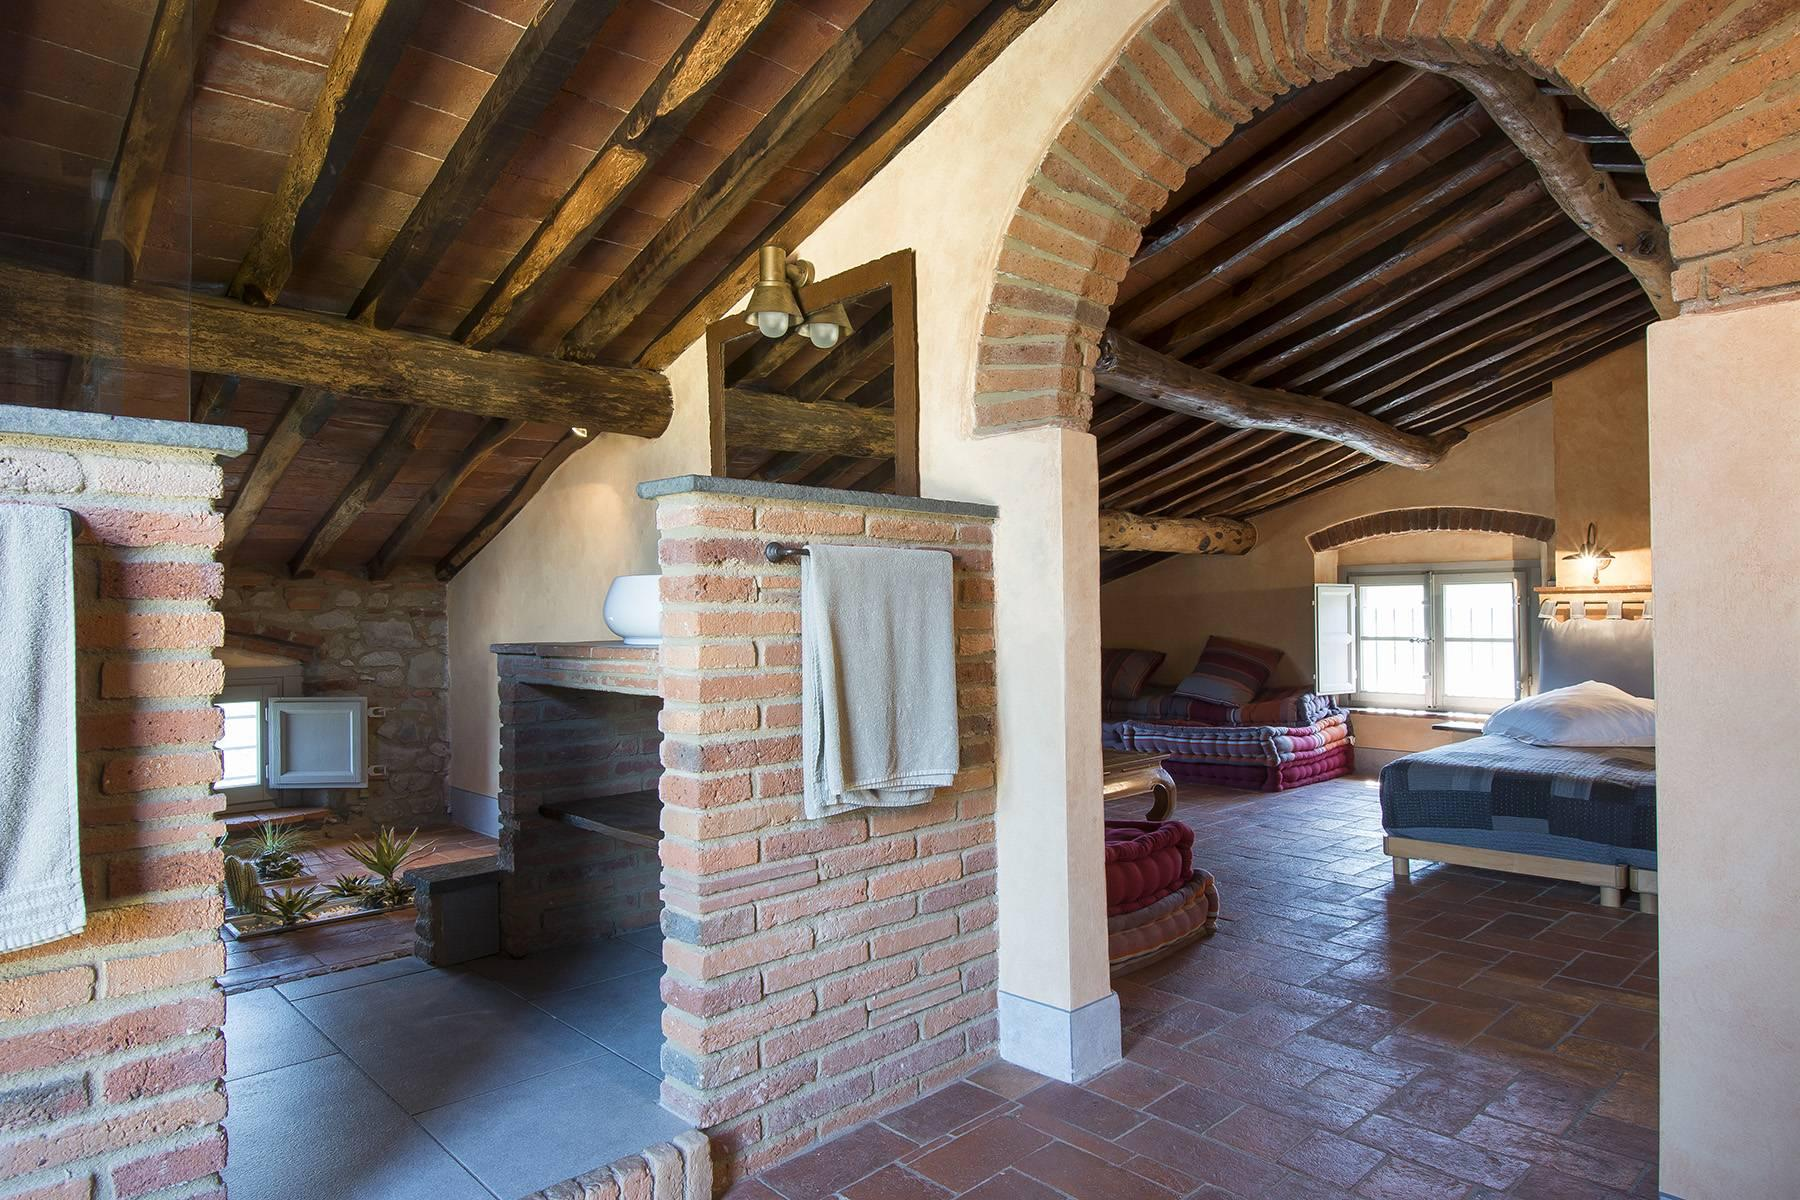 Stunning Country villa on the hills of Lucca with vineyard - 22